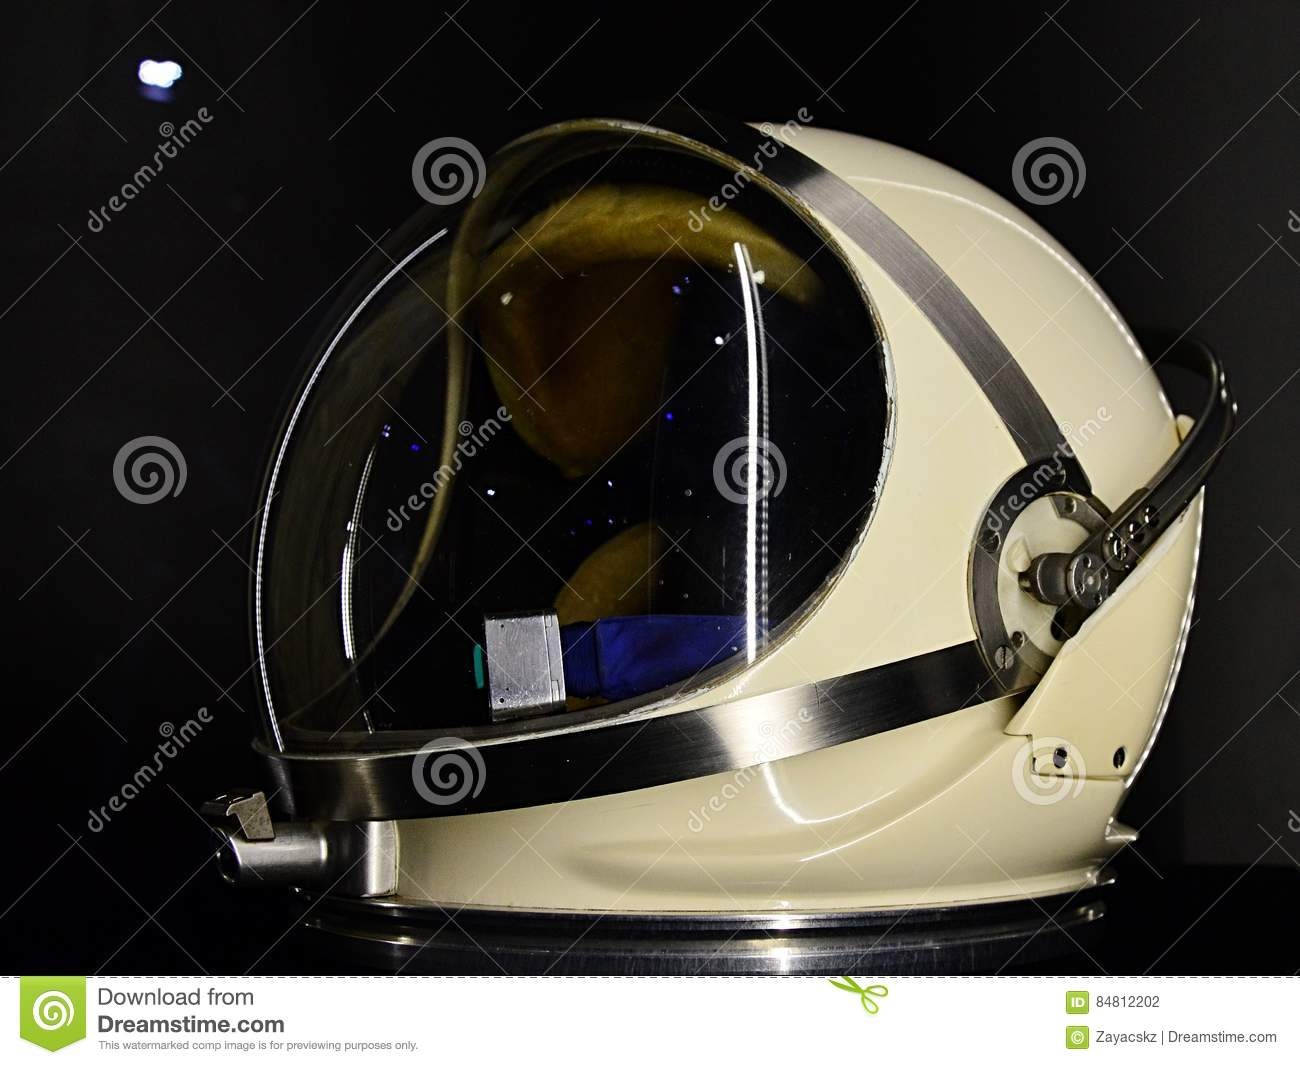 Gemini Space Program >> Helmet Pga For Spacesuit G4c Used In Gemini Space Program Displayed